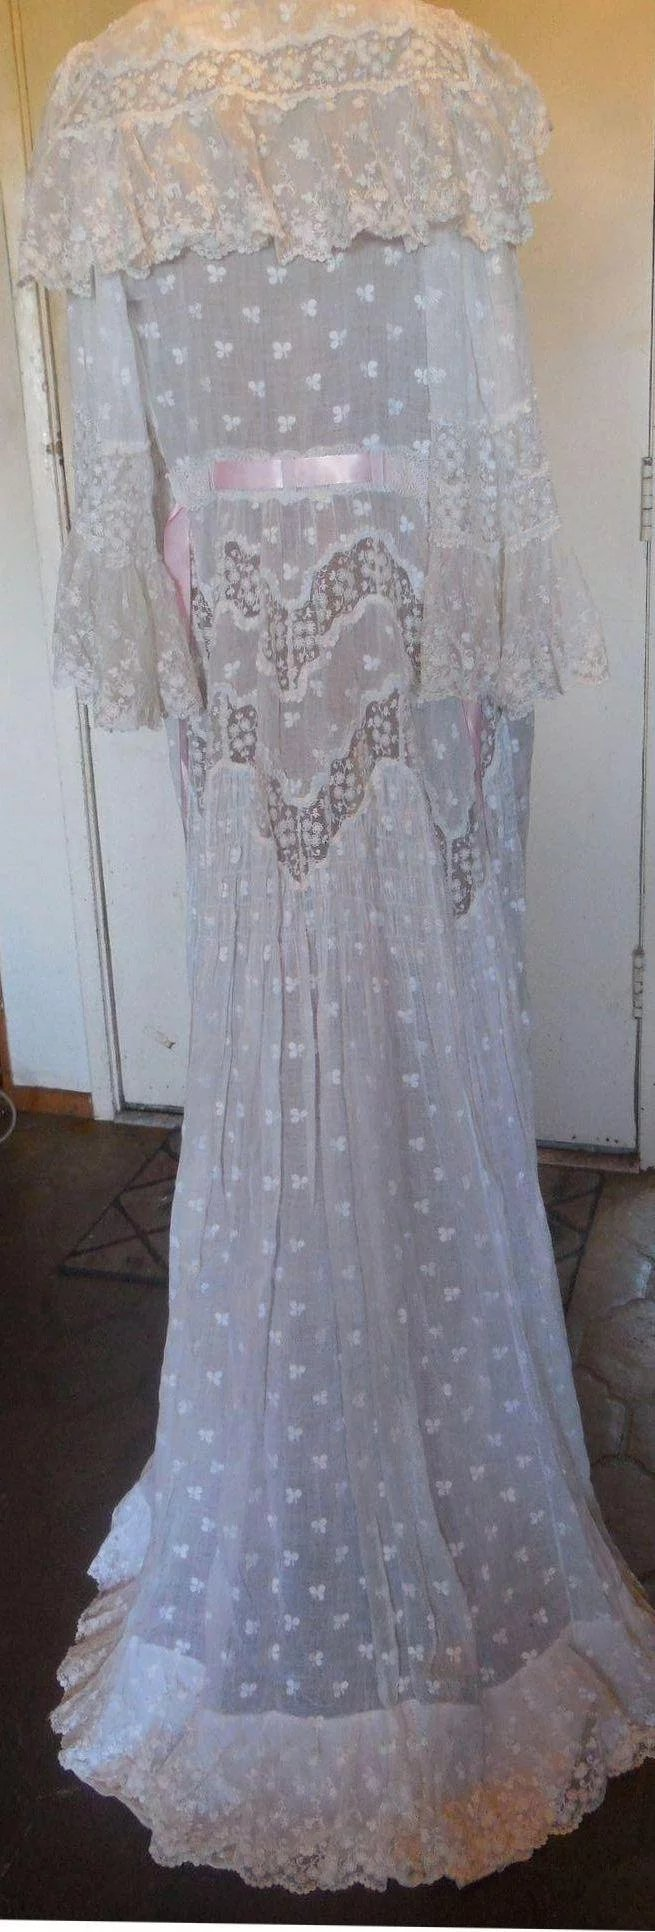 Victorian Cotton and Lace Dressing Gown : Iron Gate Antiques   Ruby Lane